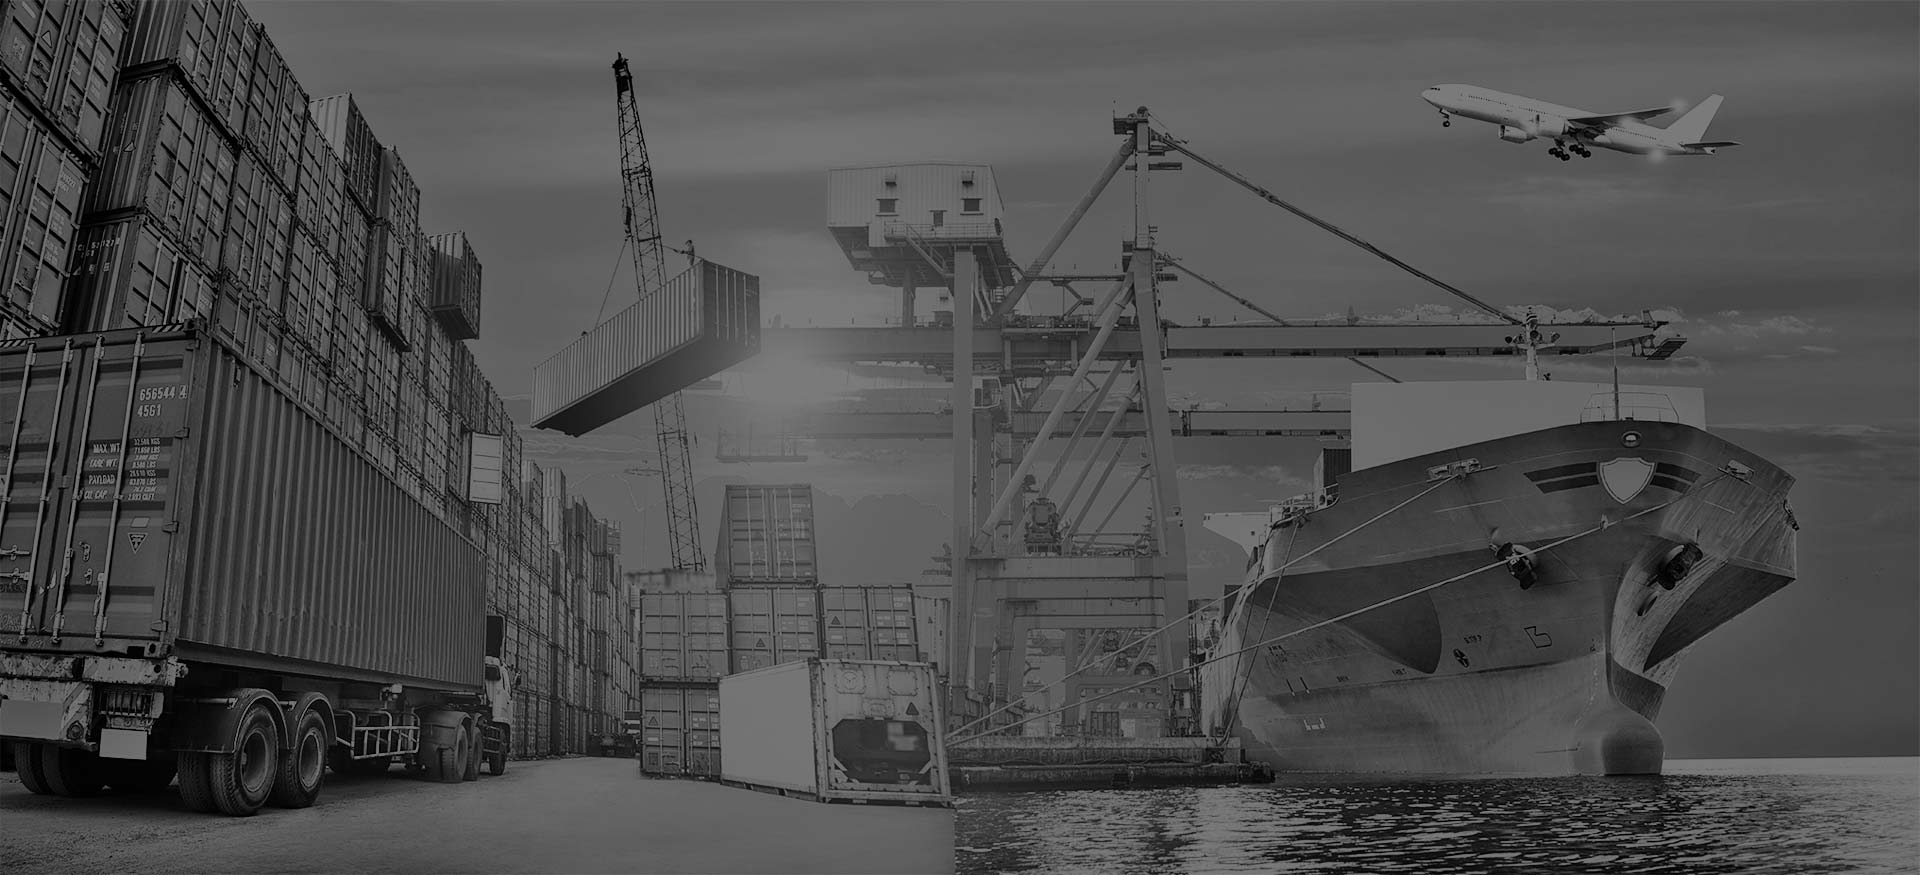 Your Ultimate Freight & Logistics Partner